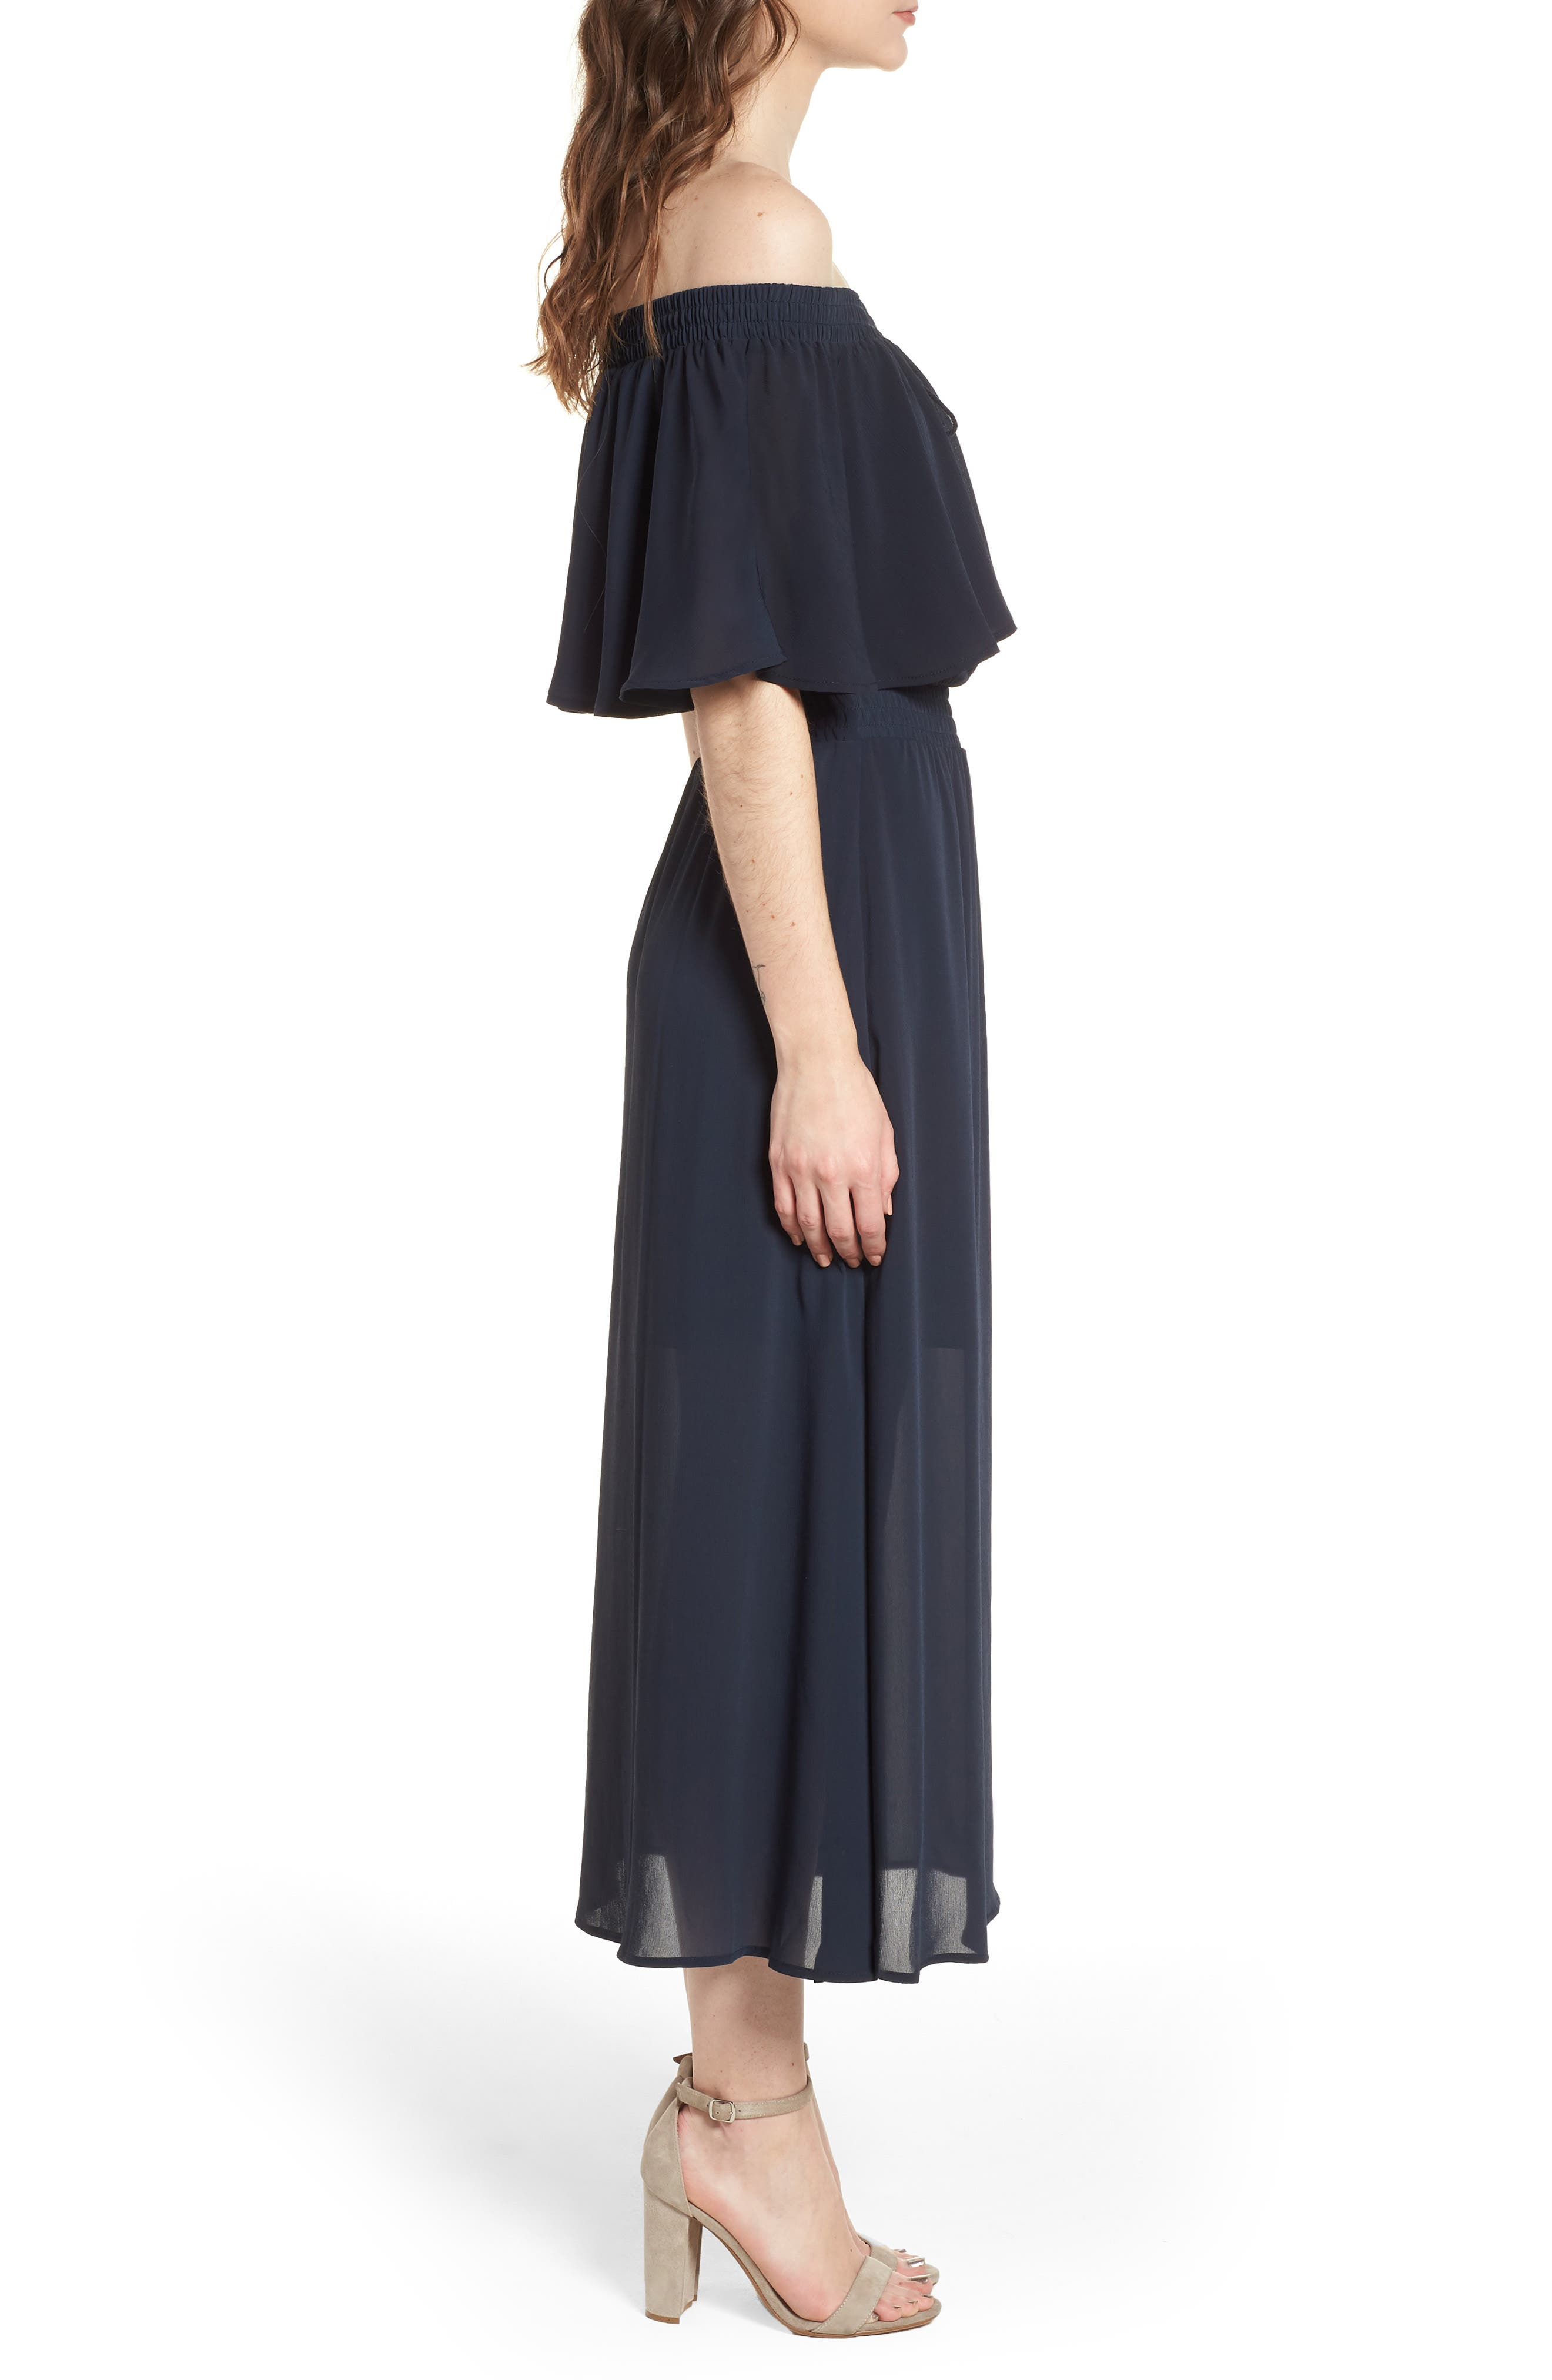 Touch the Sun Off the Shoulder Dress,                             Alternate thumbnail 5, color,